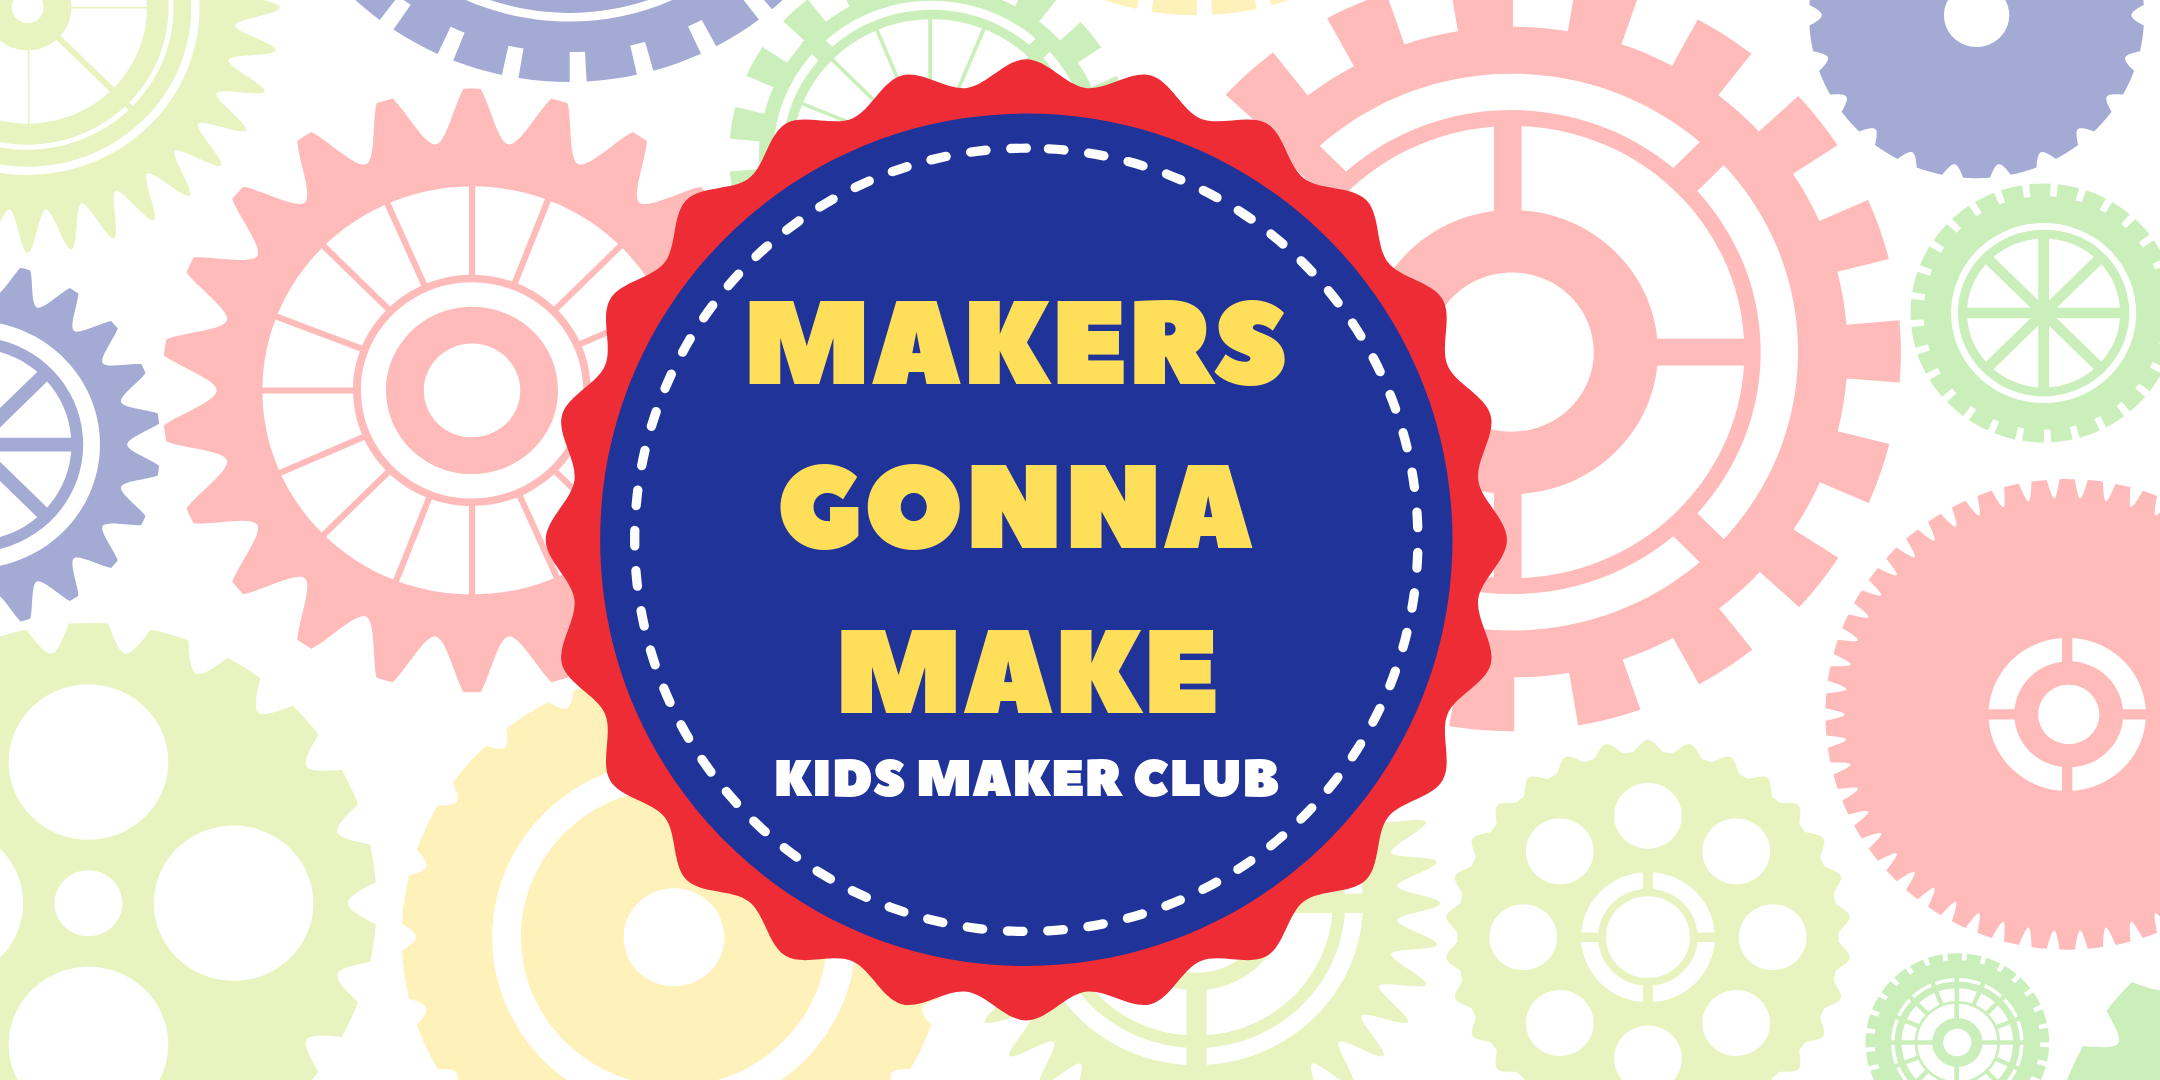 Makers Gonna Make Badget for Kids Maker Club